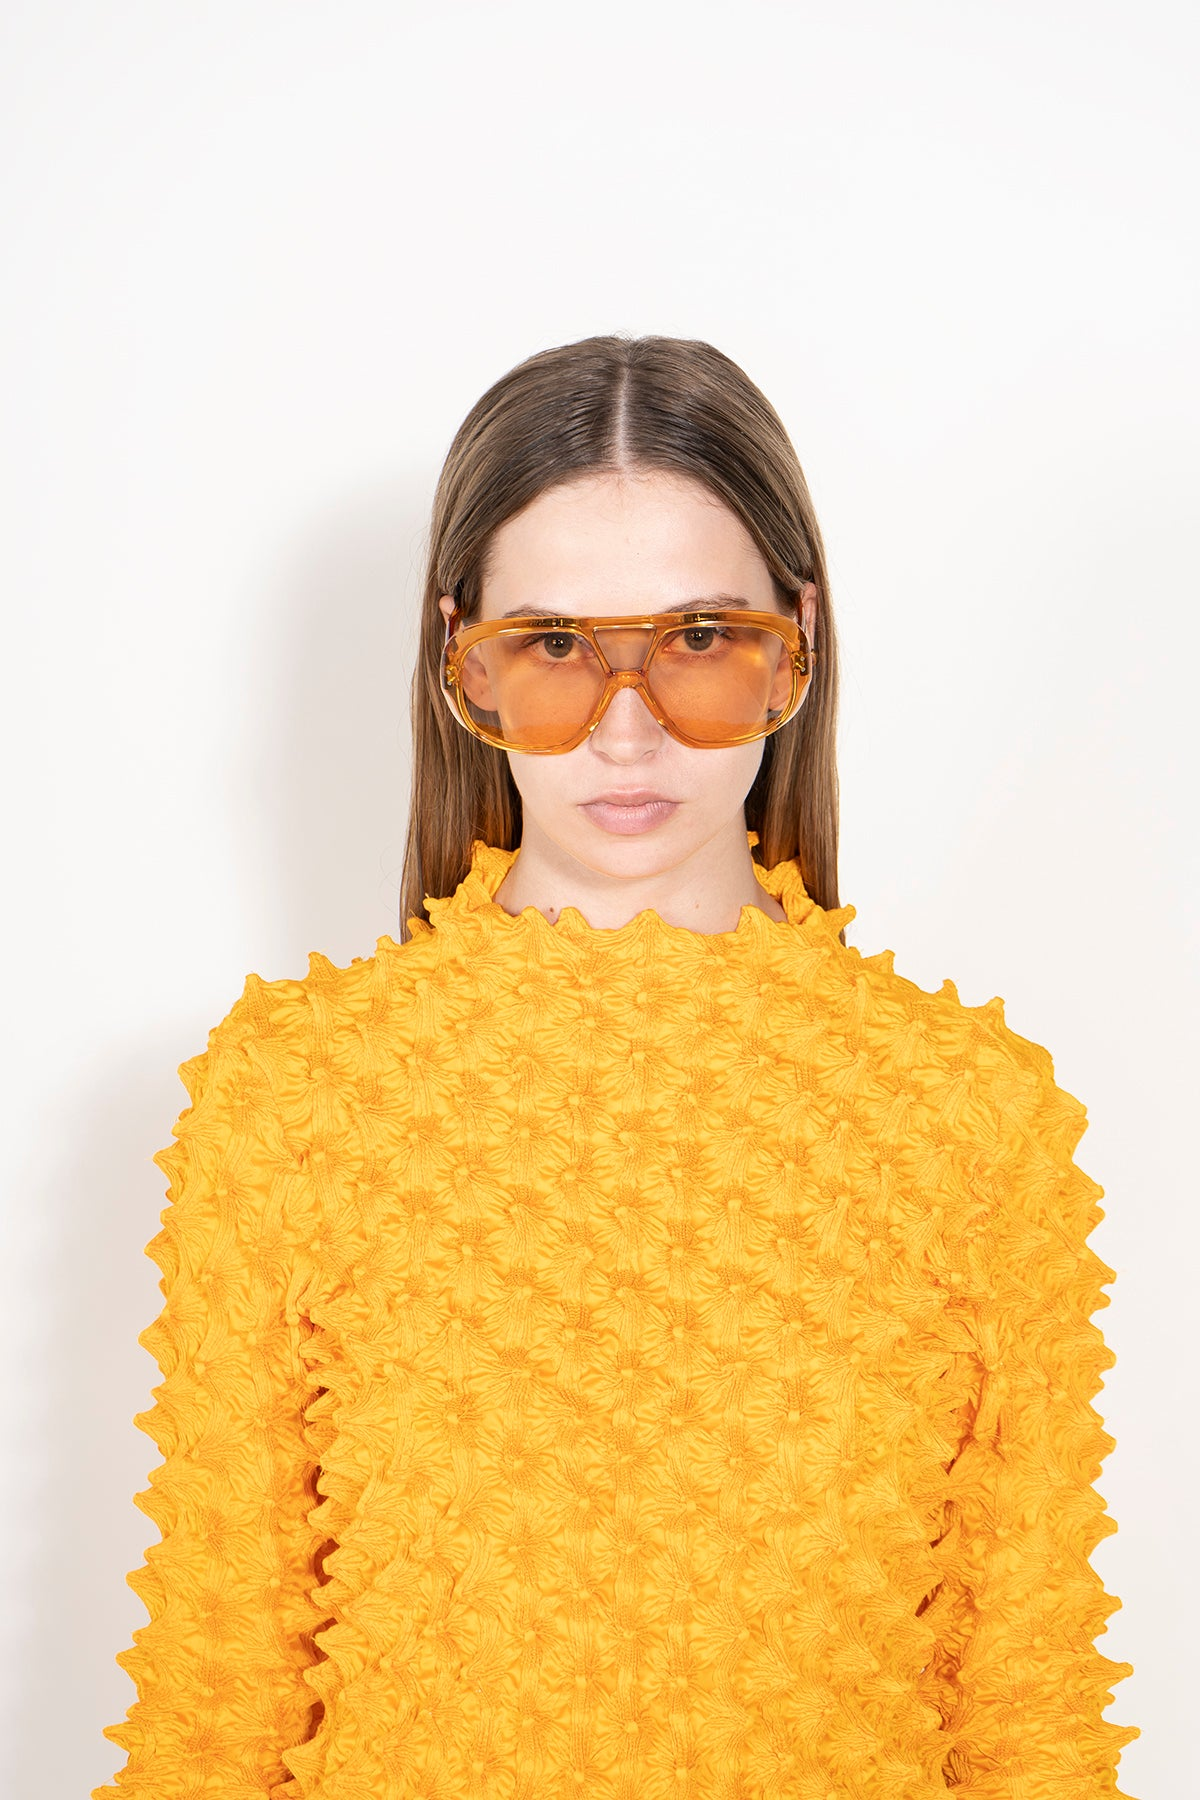 ORANGE AVIATOR SUNGLASSES MARQUES ALMEIDA